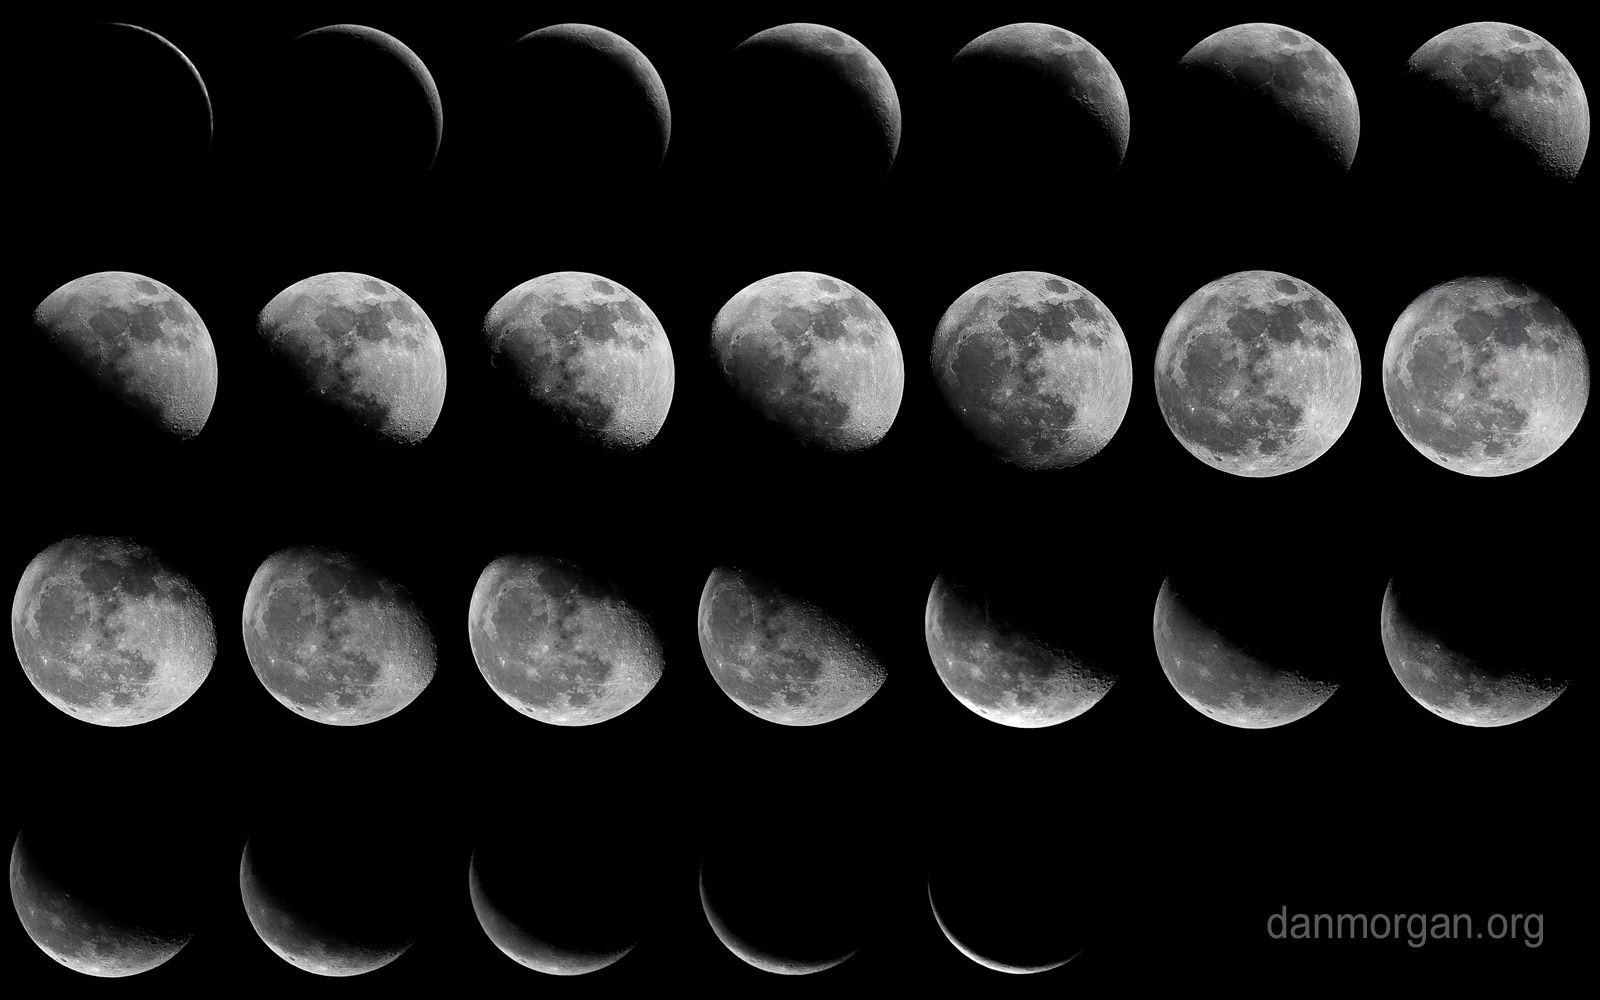 Moon Phases Wallpapers - Top Free Moon Phases Backgrounds  Desktop Calendar With Lunar Cycle